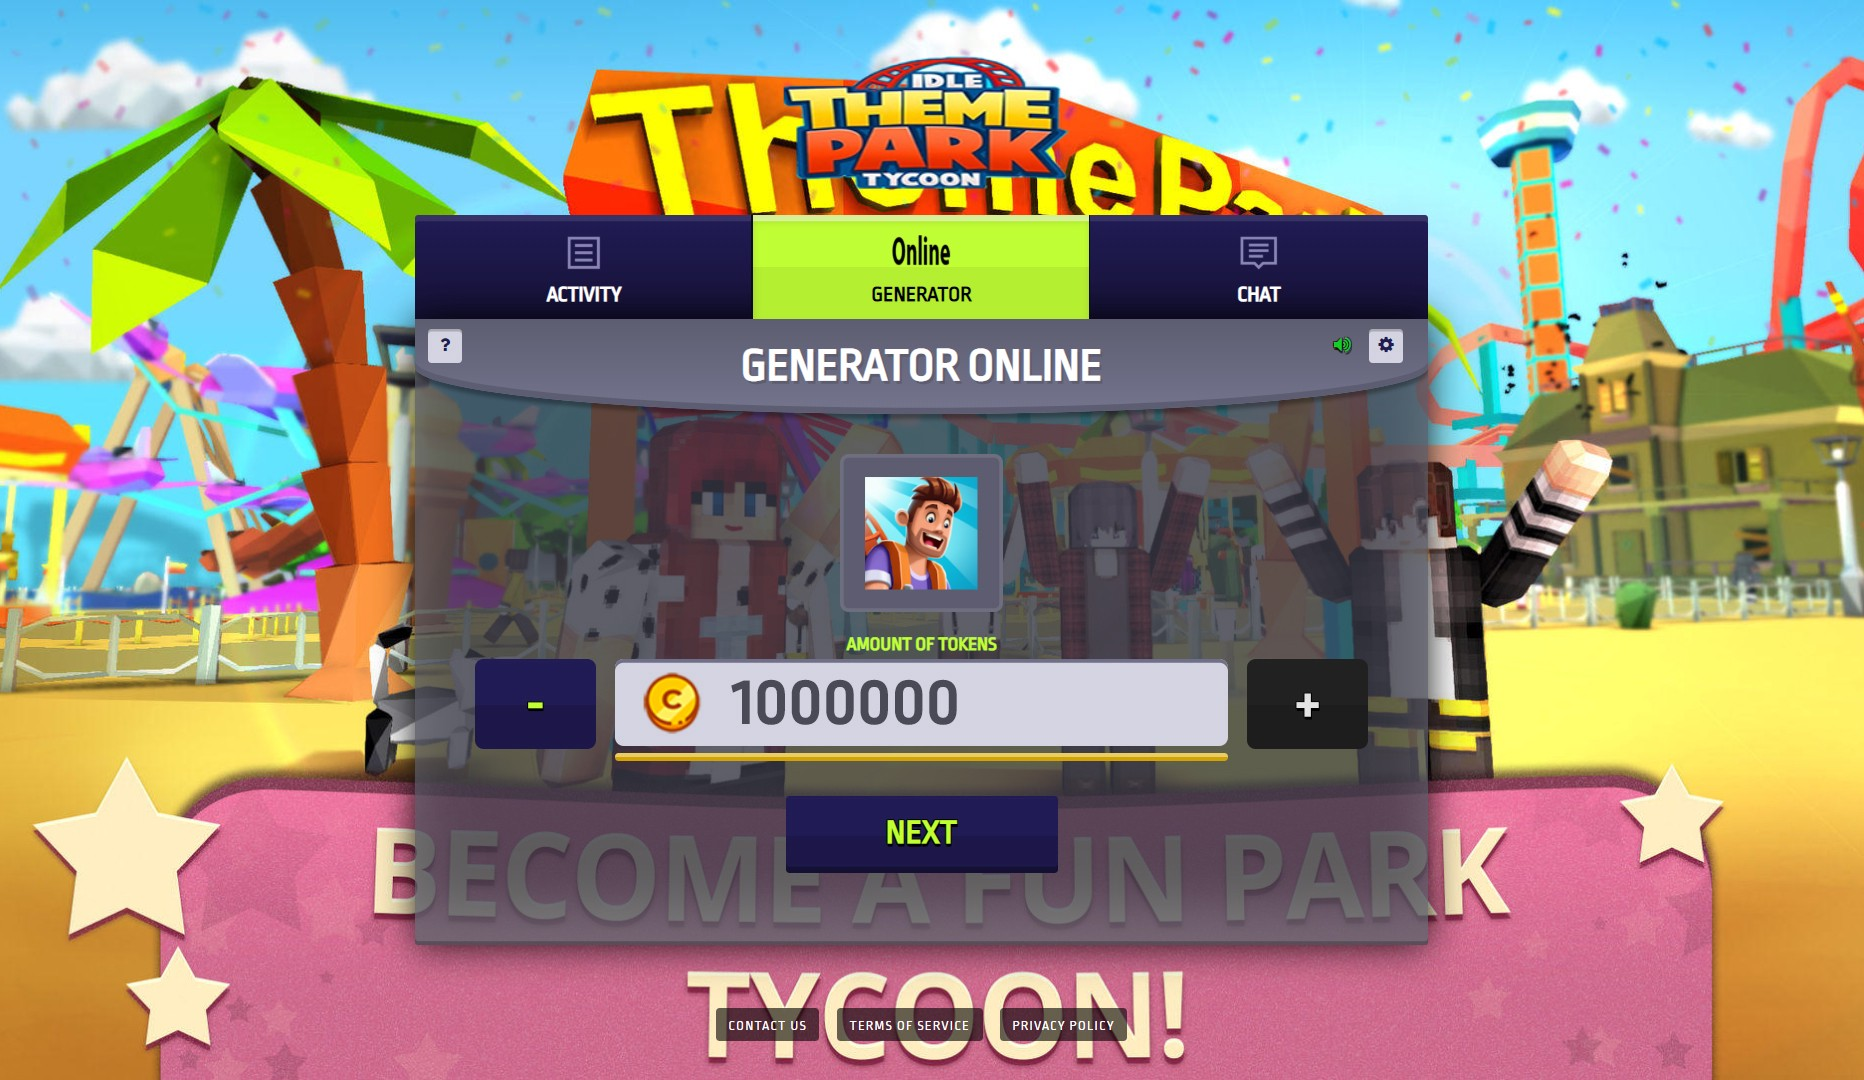 Idle Theme Park Tycoon APK Mod Hack For Tokens and Cash